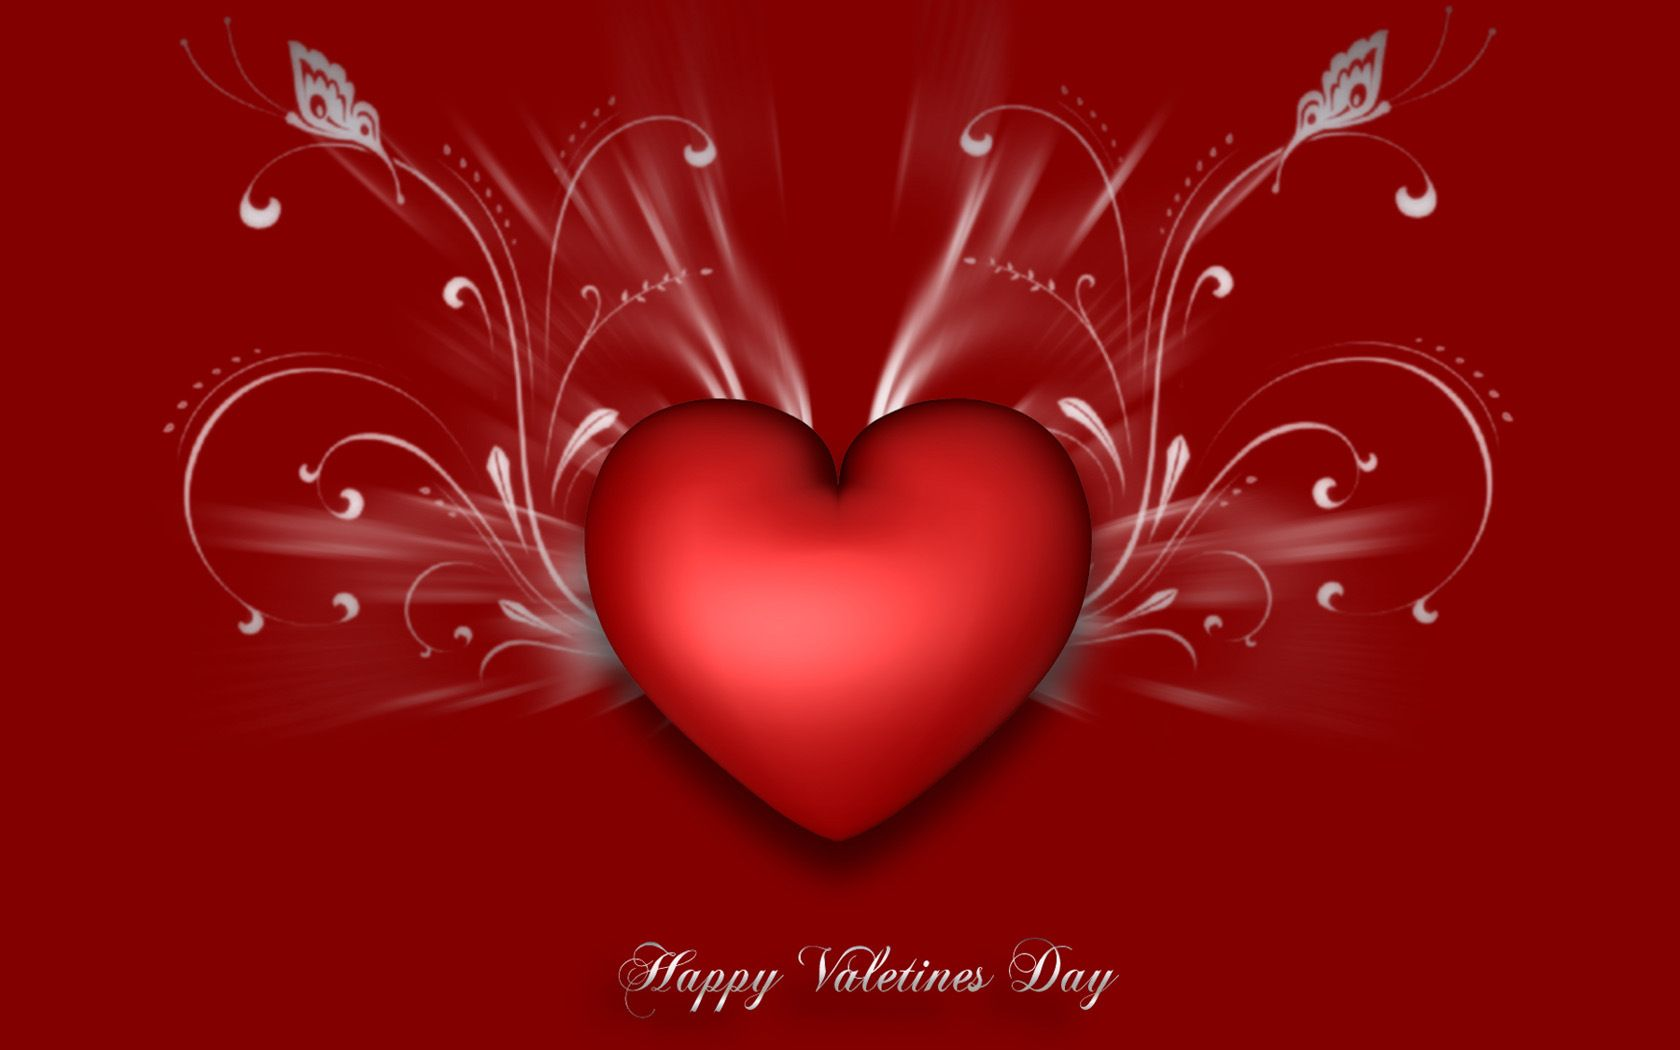 Funny Valentine Day Card Messages On Flowers Flowersvalentine Day